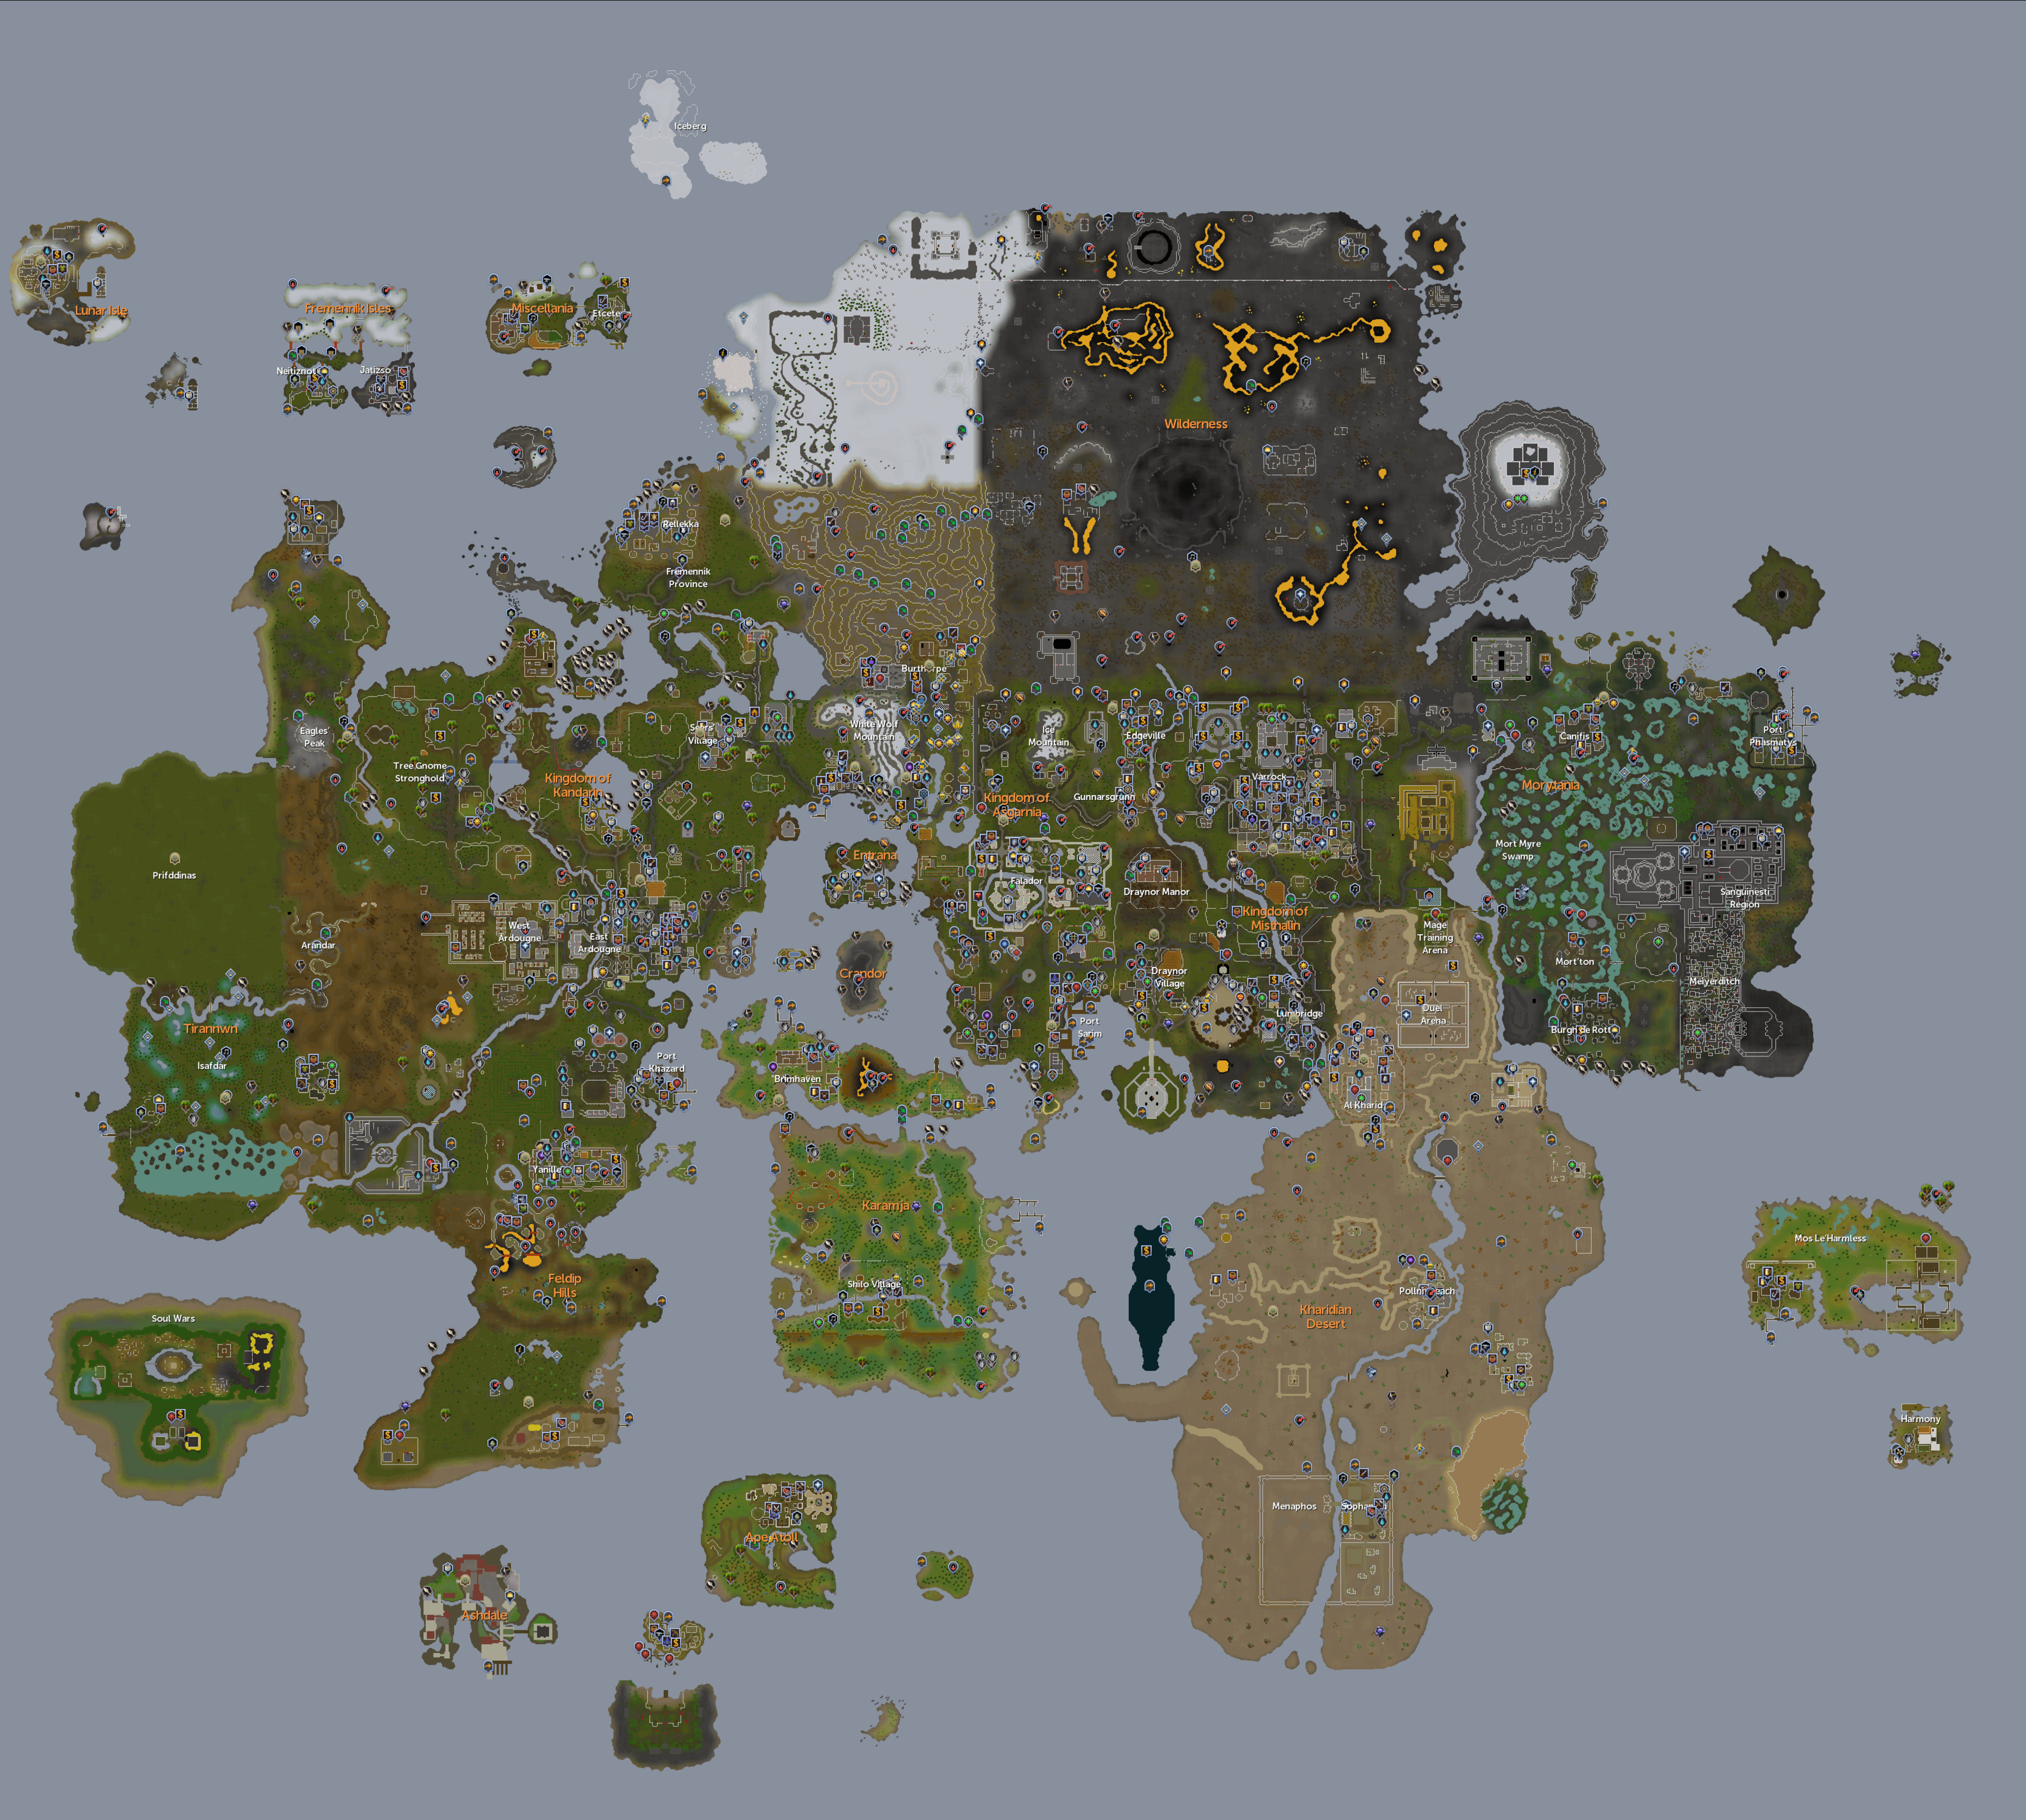 For the raw map image see runescape worldmap png